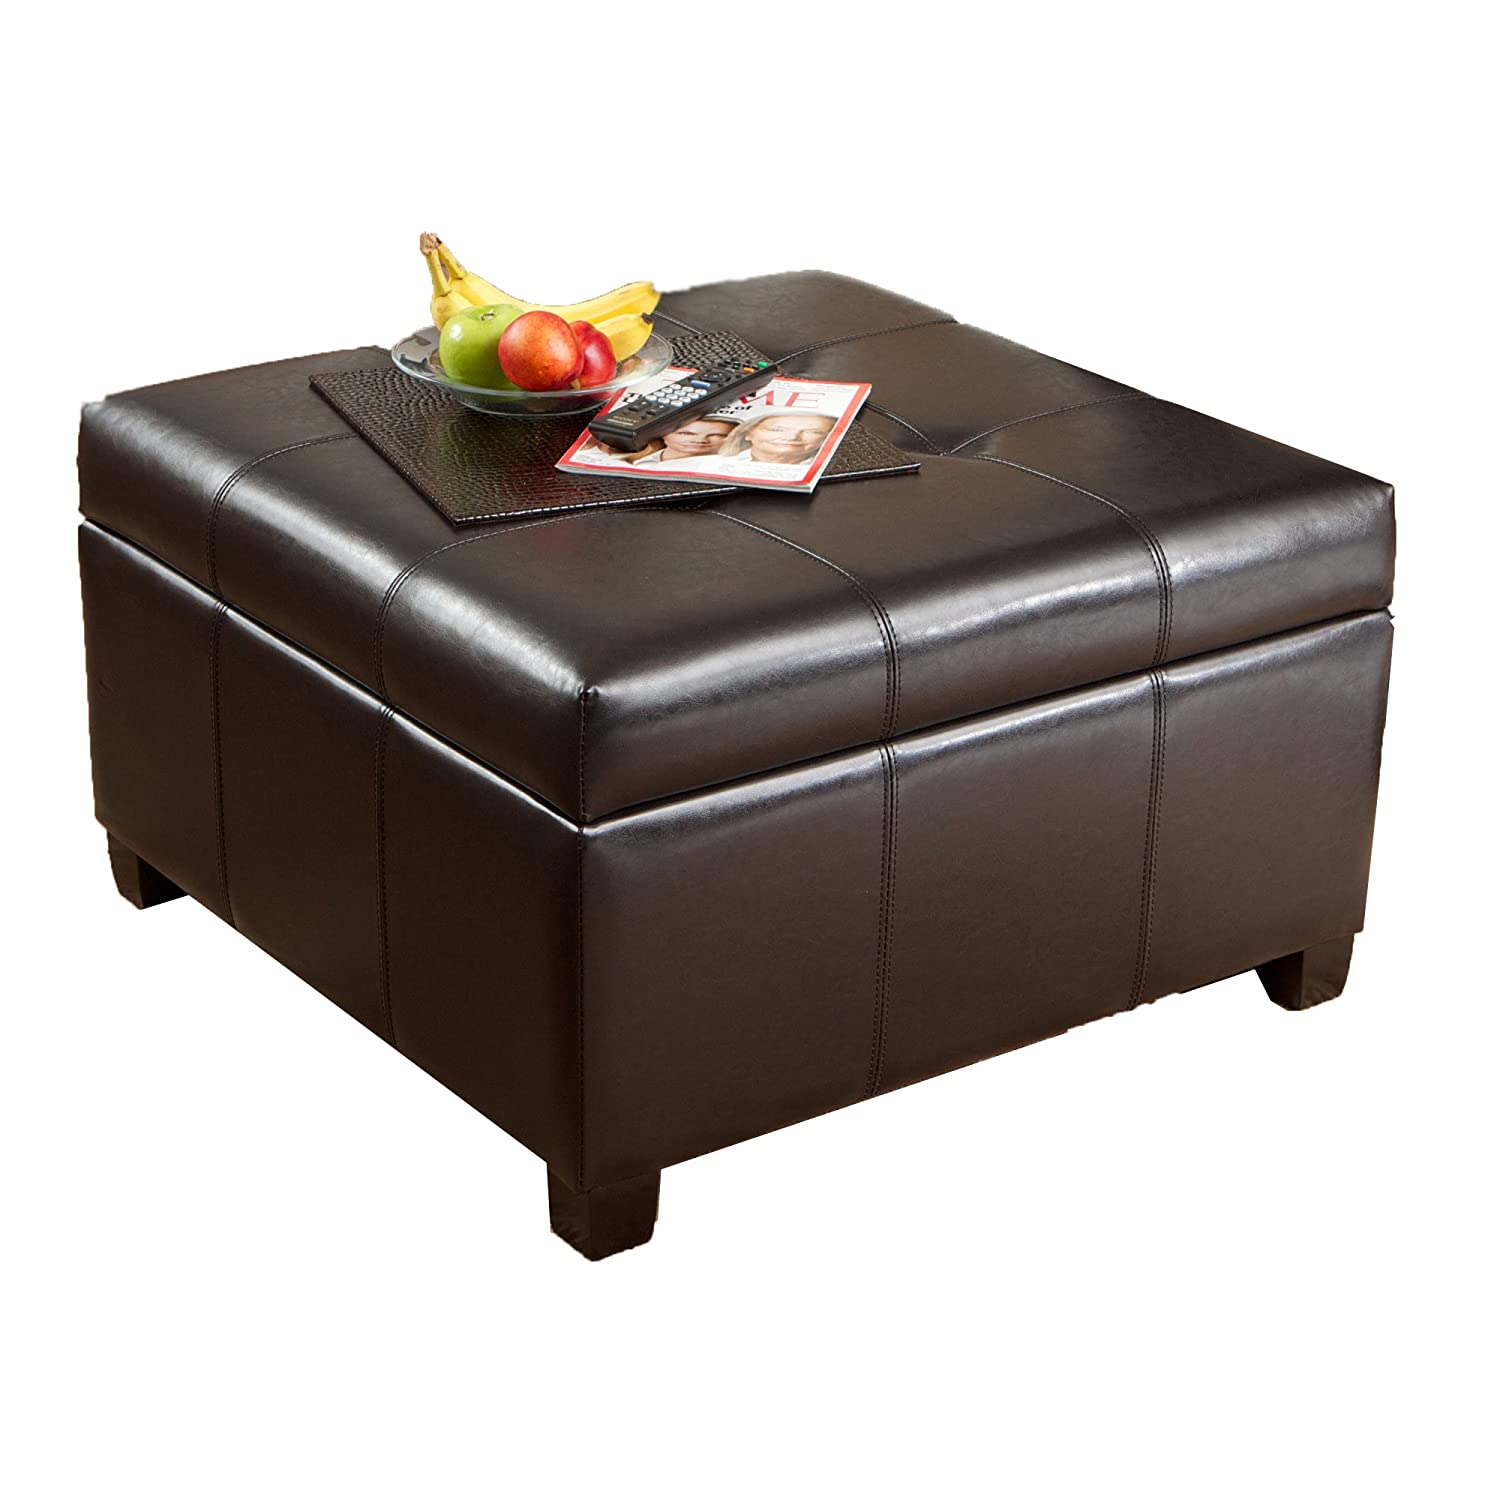 Exceptional Amazon.com: Best Selling | Storage Ottoman | Coffee Table | Square Shaped |  Premium Bonded Leather In Espresso Brown: Kitchen U0026 Dining